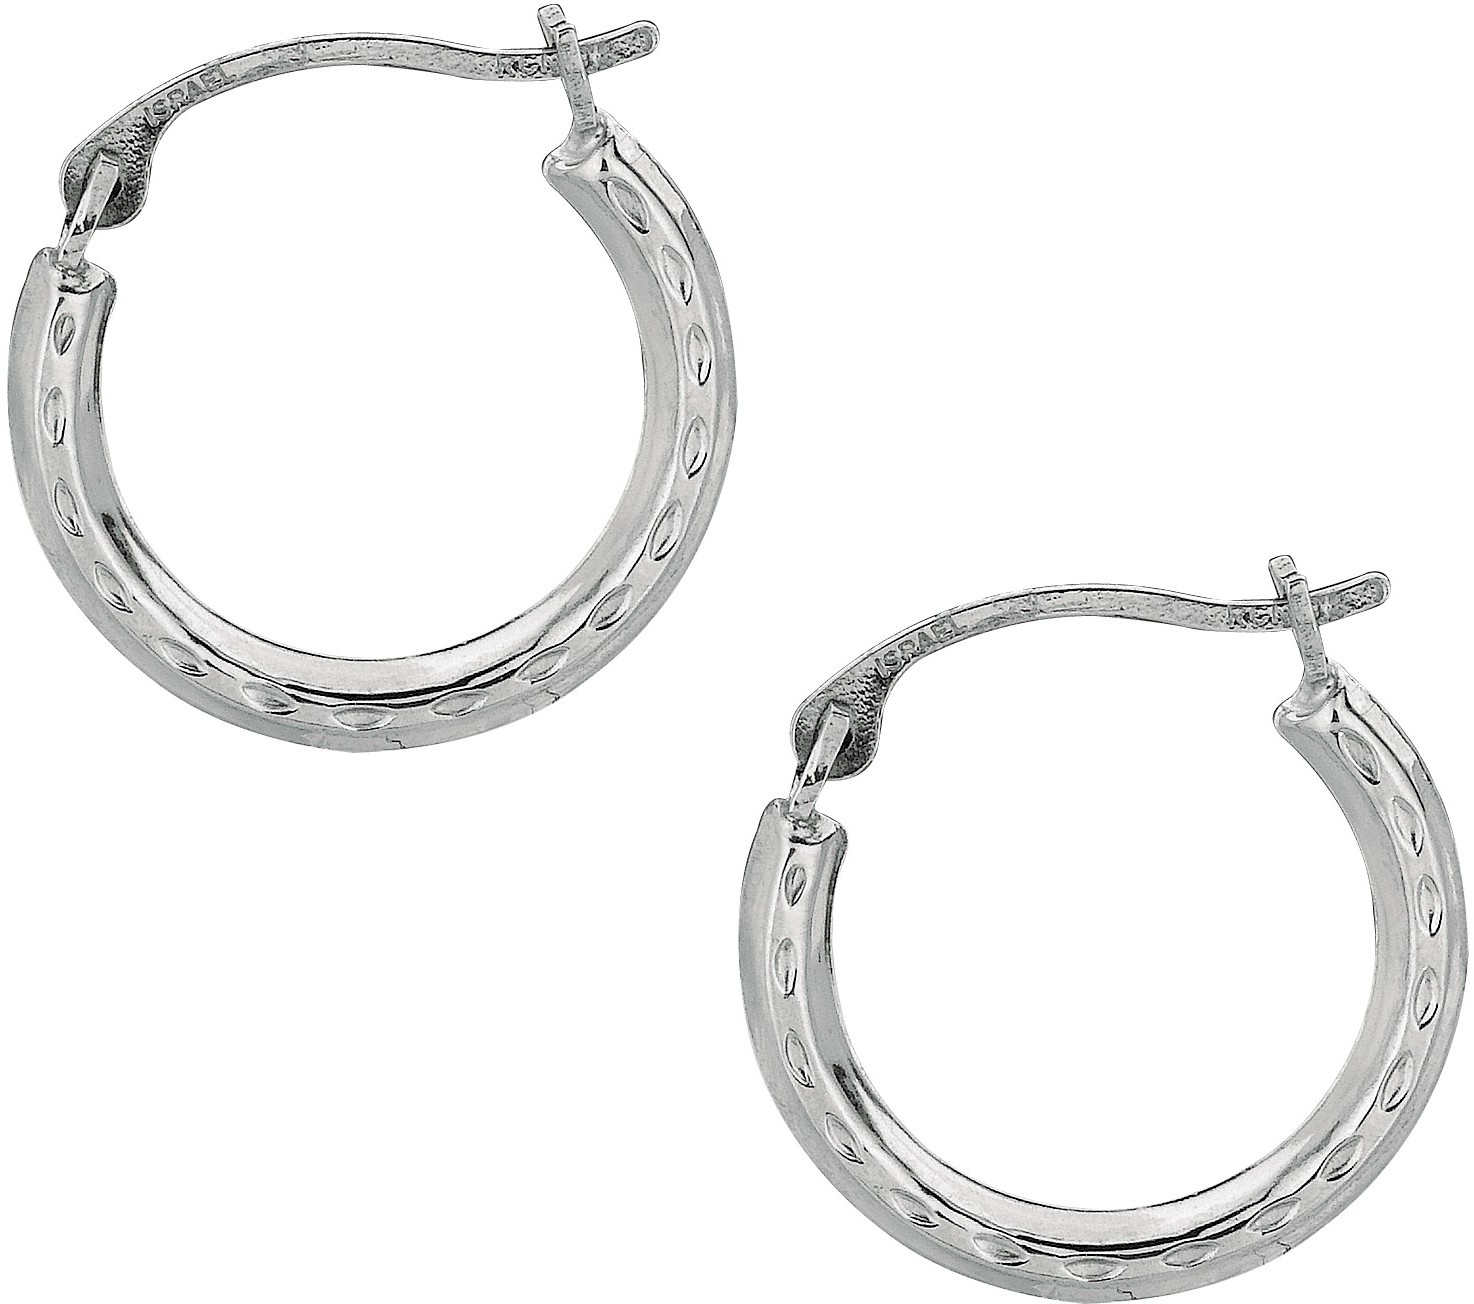 10K White Gold Polished Textured Open Round Hoop Like Fancy Earrings